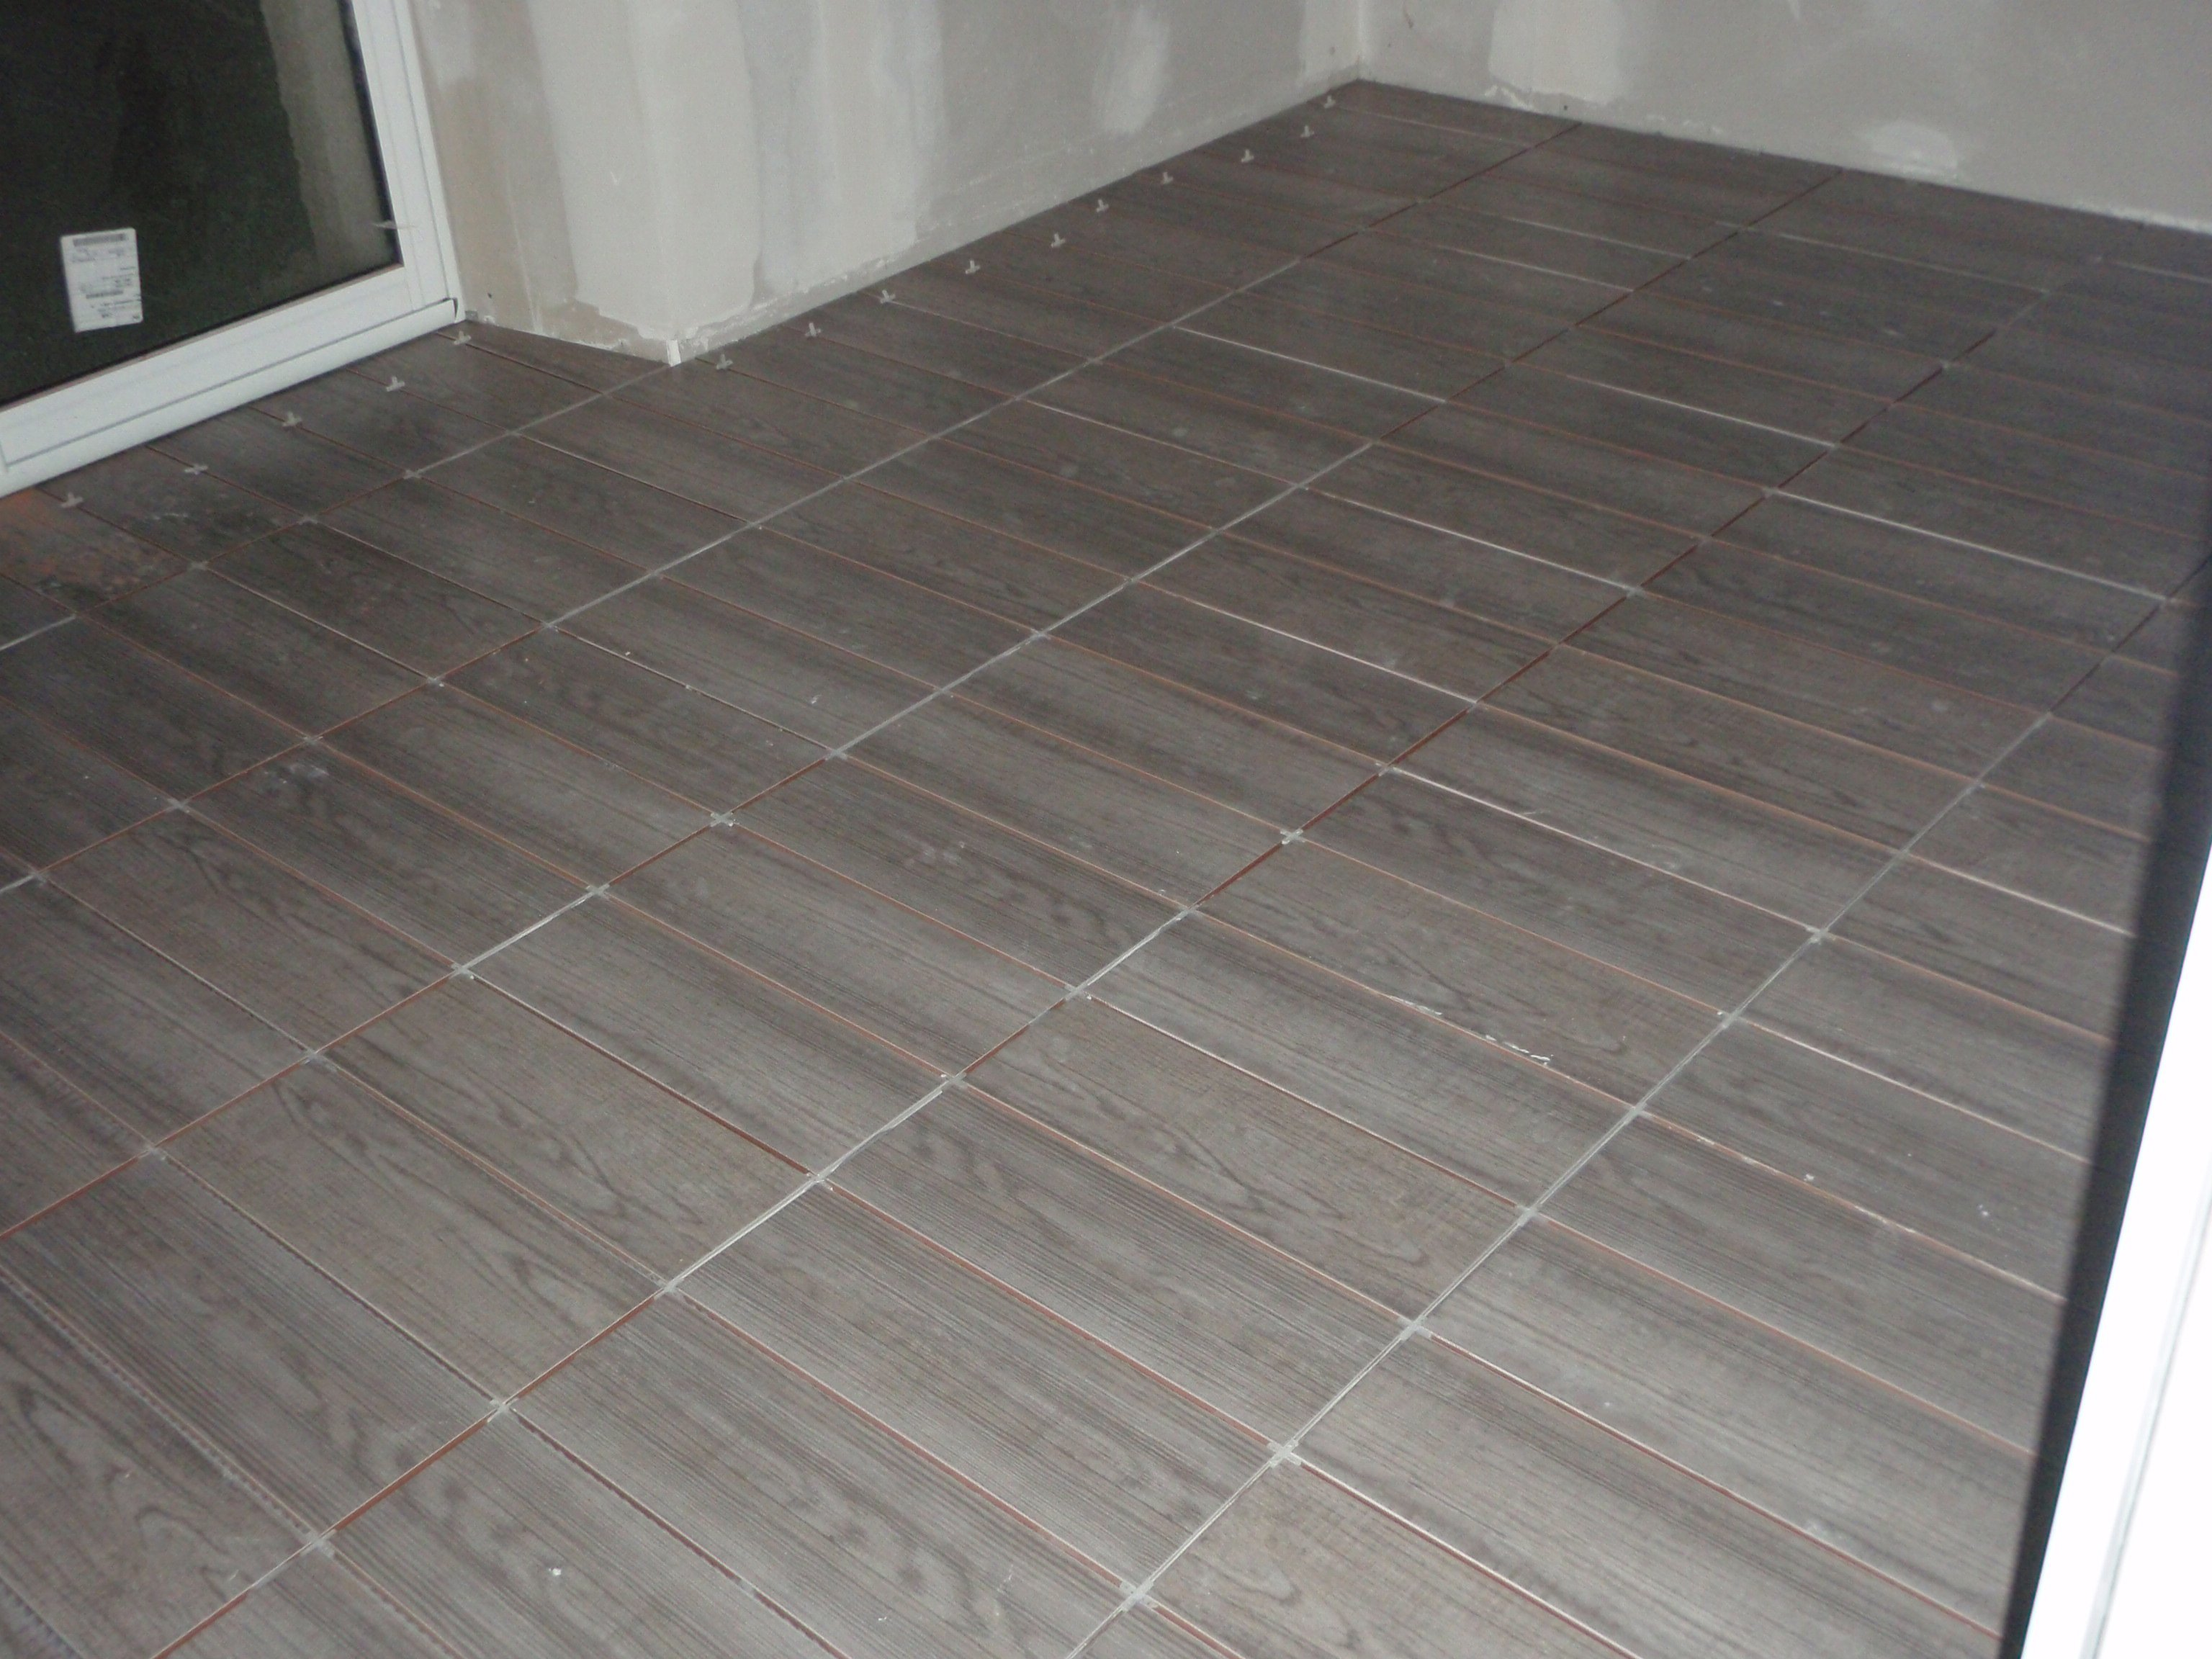 Une long re un projet une r novation carrelage c for Carrelage cuisine imitation parquet